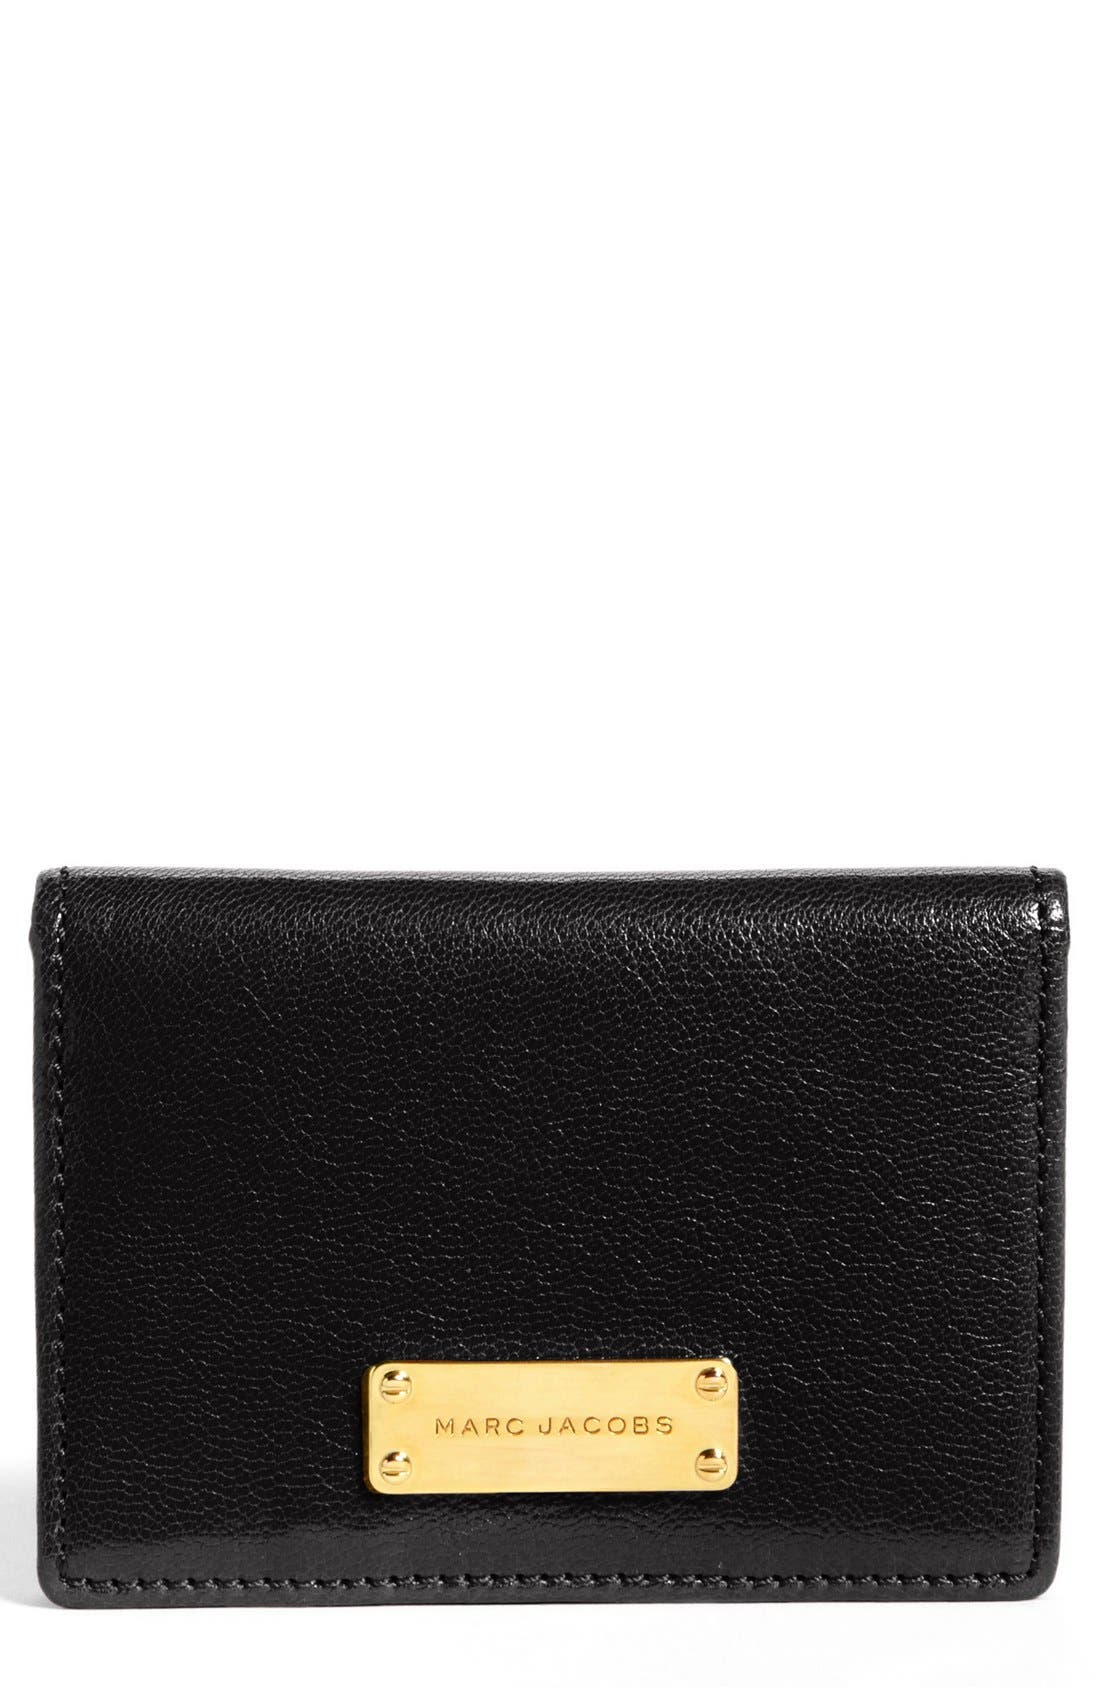 Alternate Image 1 Selected - MARC JACOBS 'Wellington' Leather Card Case